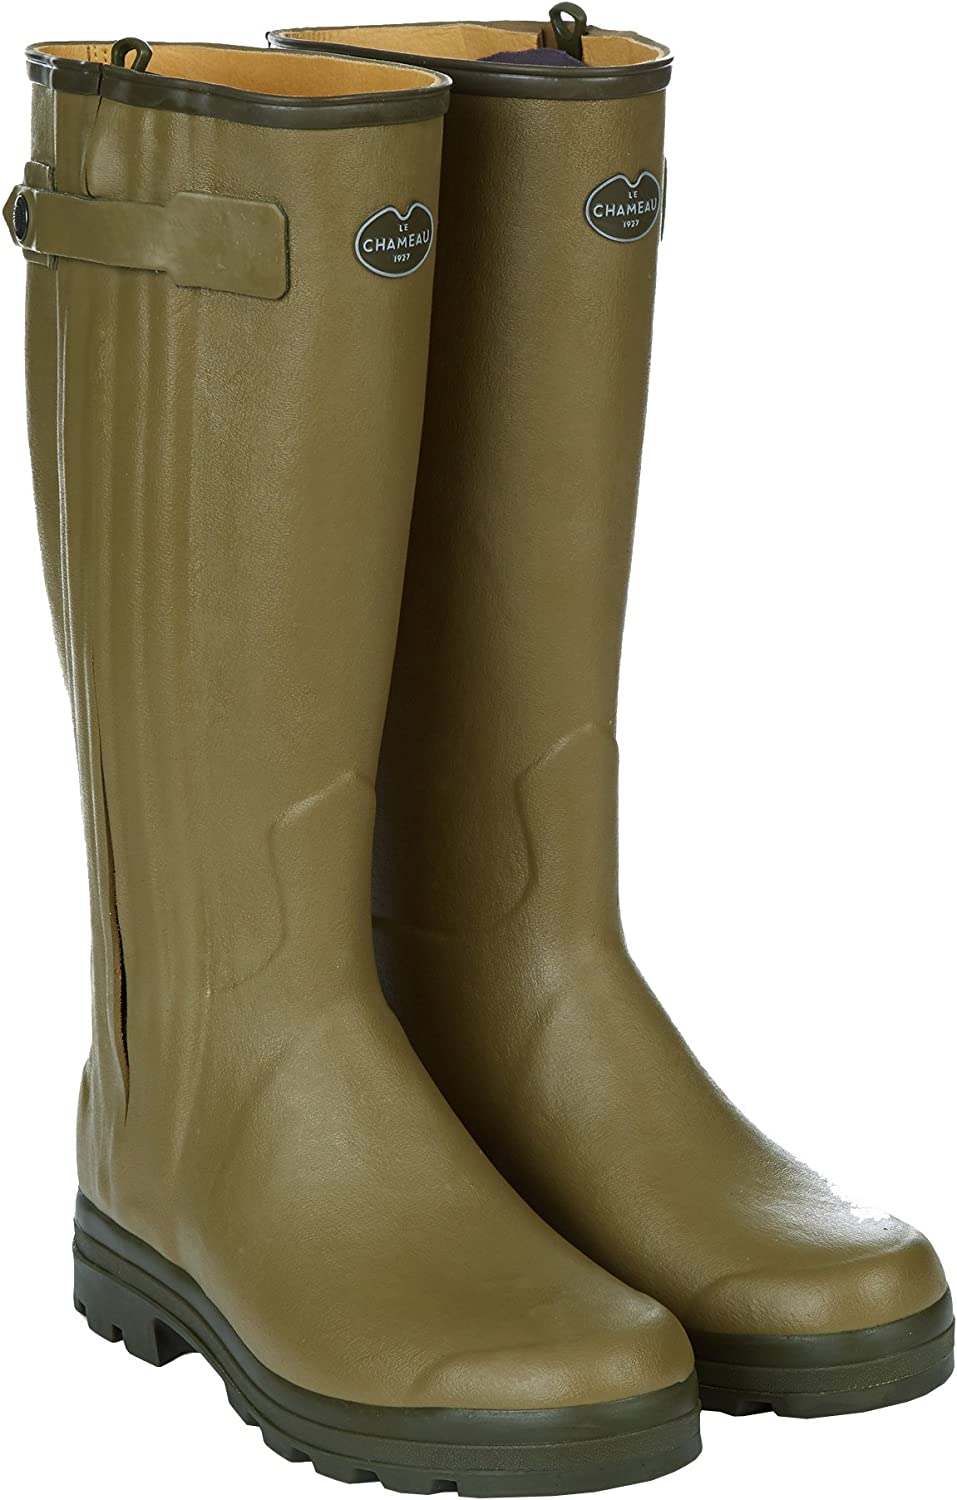 LE CHAMEAU 1927 Men's Chasseur Leather Lined Boot Cuir W